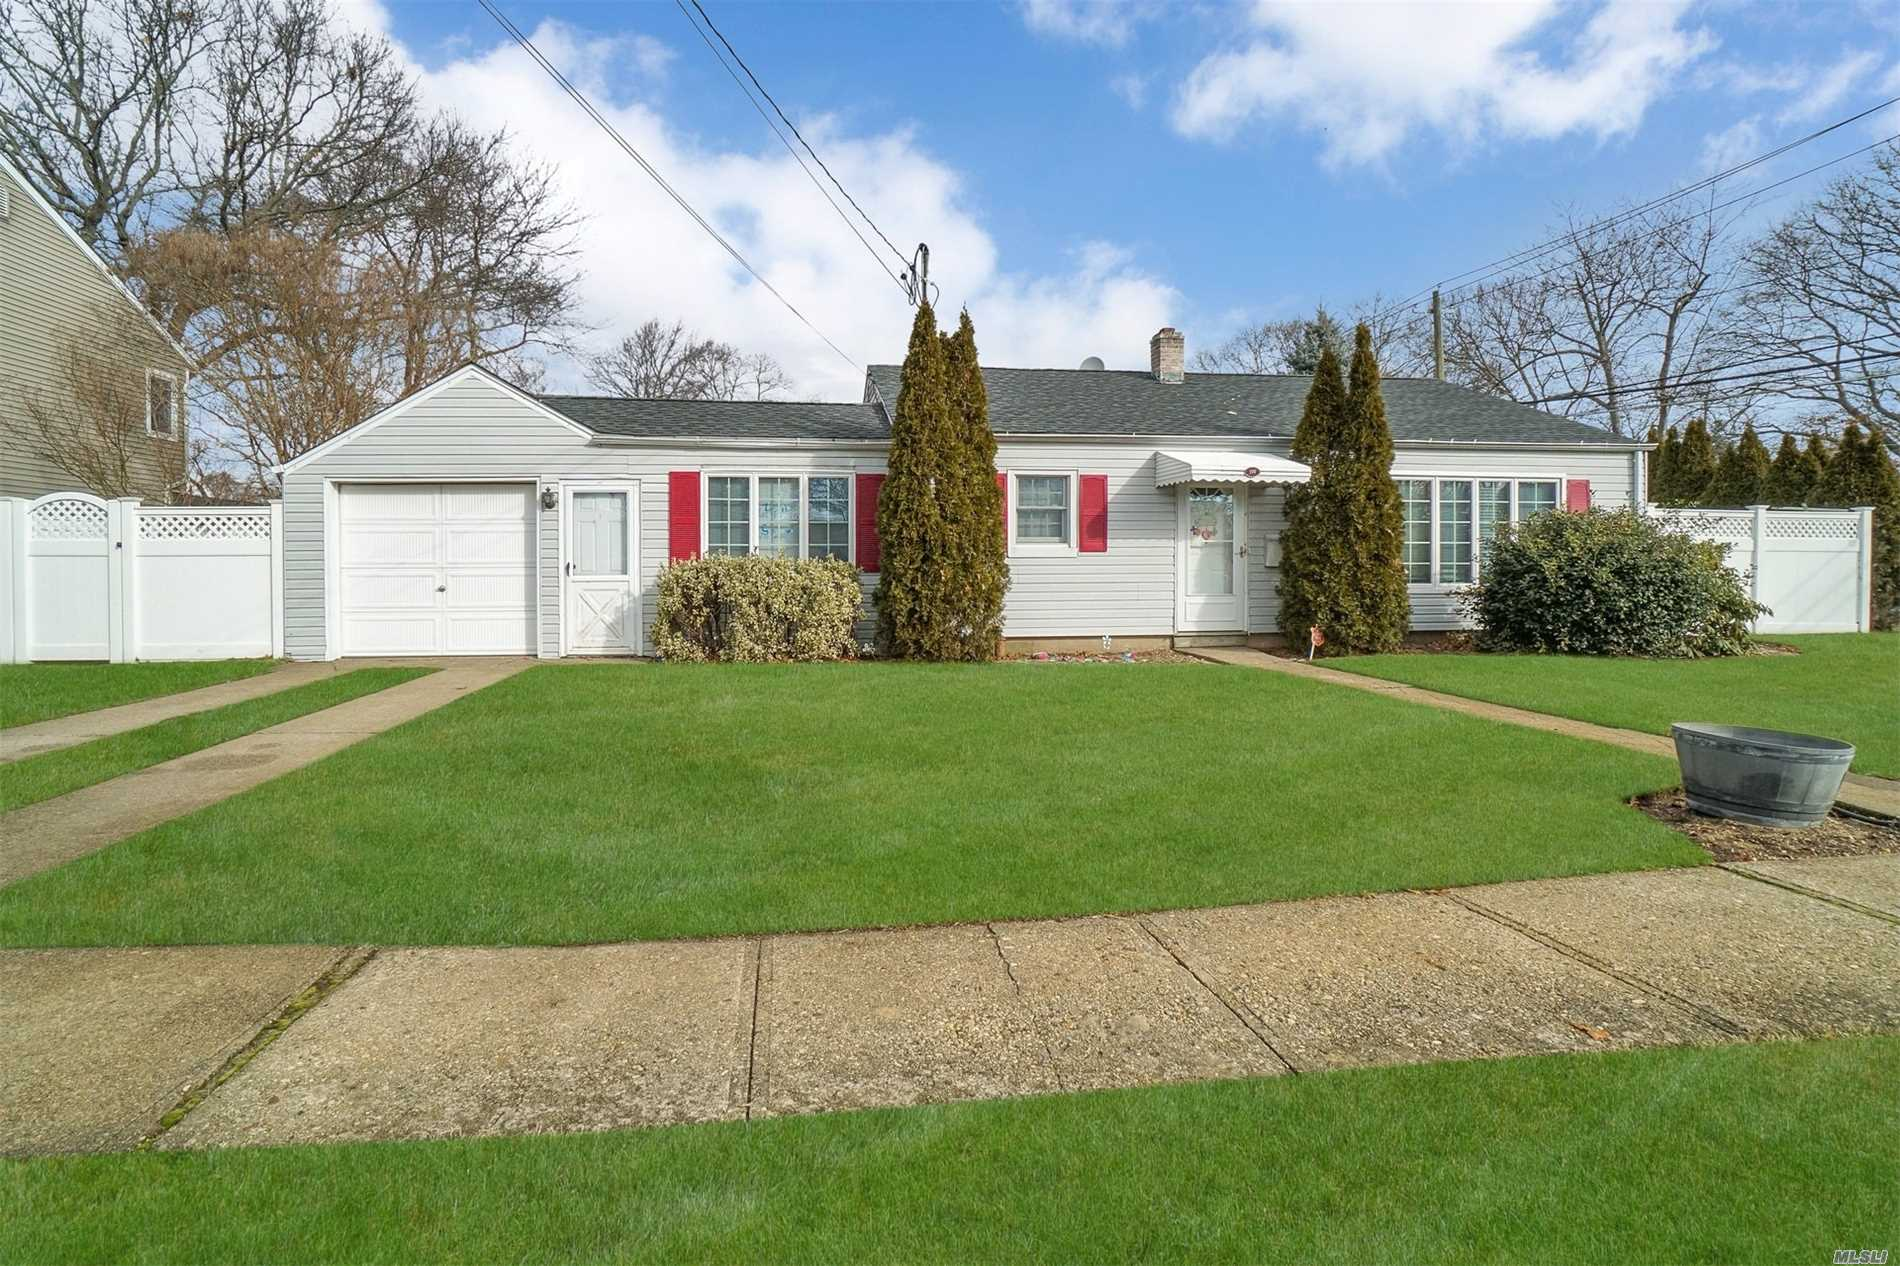 Beautifully Updated Ranch In The Heart Of Massapequa Park. Move In Ready Home With Many Updates: Roof - 6 Years Old, Floors - 6 Years Old, Boiler - 5 Years Old, Cac - 5 Years Old, Windows, Sliders And Electric Done In 2007. Close To Railroad And Village. A Must See, Will Not Last Long...